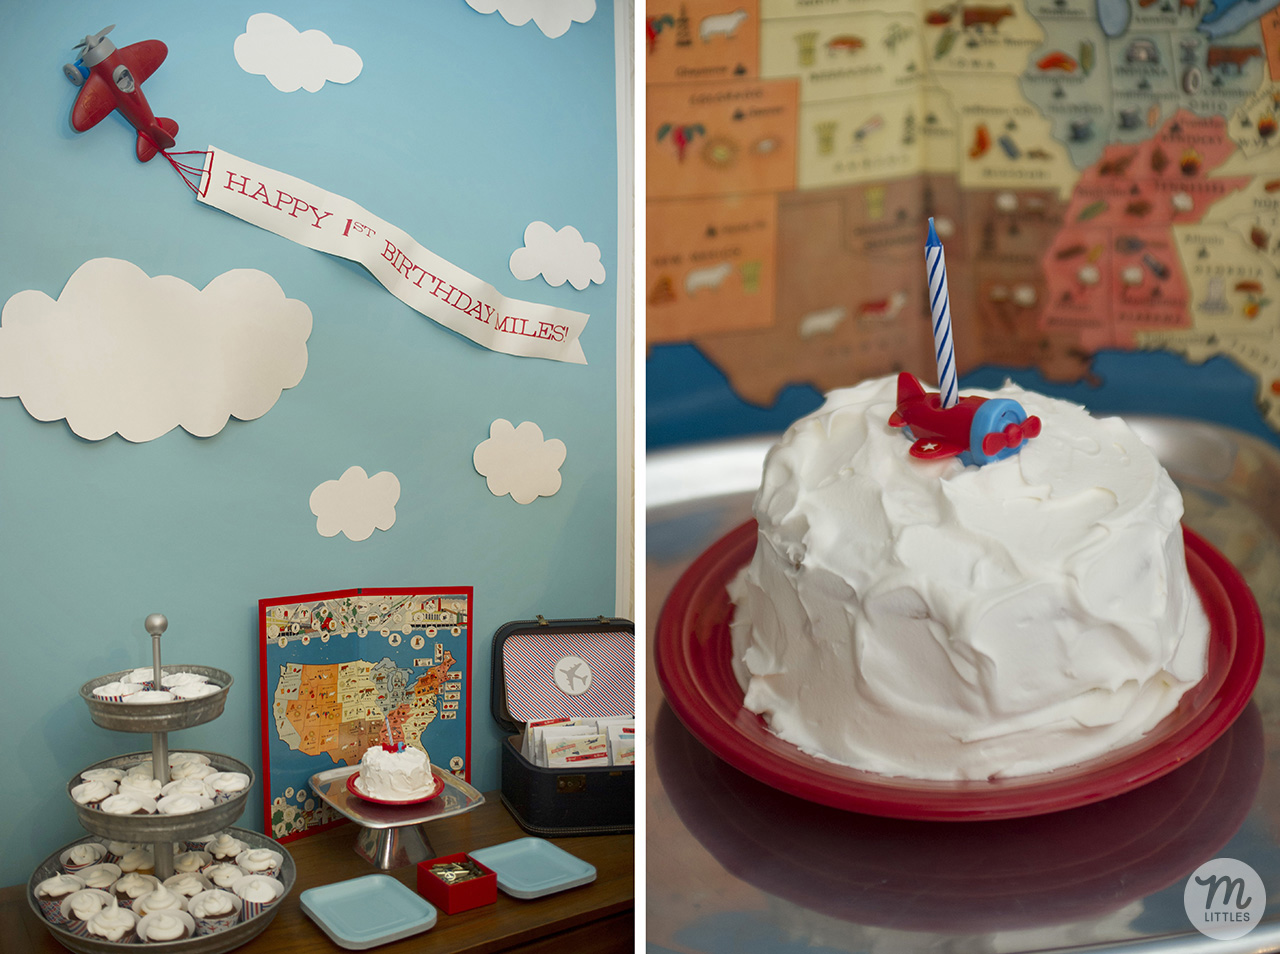 I made a smash cake for Miles and cupcakes for everyone else. Chocolate and vanilla, both from cake mixes, with Cool Whip frosting. We're really fancy like that. I also used a few old travel themed board games from my parents' house to decorate. The little  airplane candle holder  we got from Amazon.